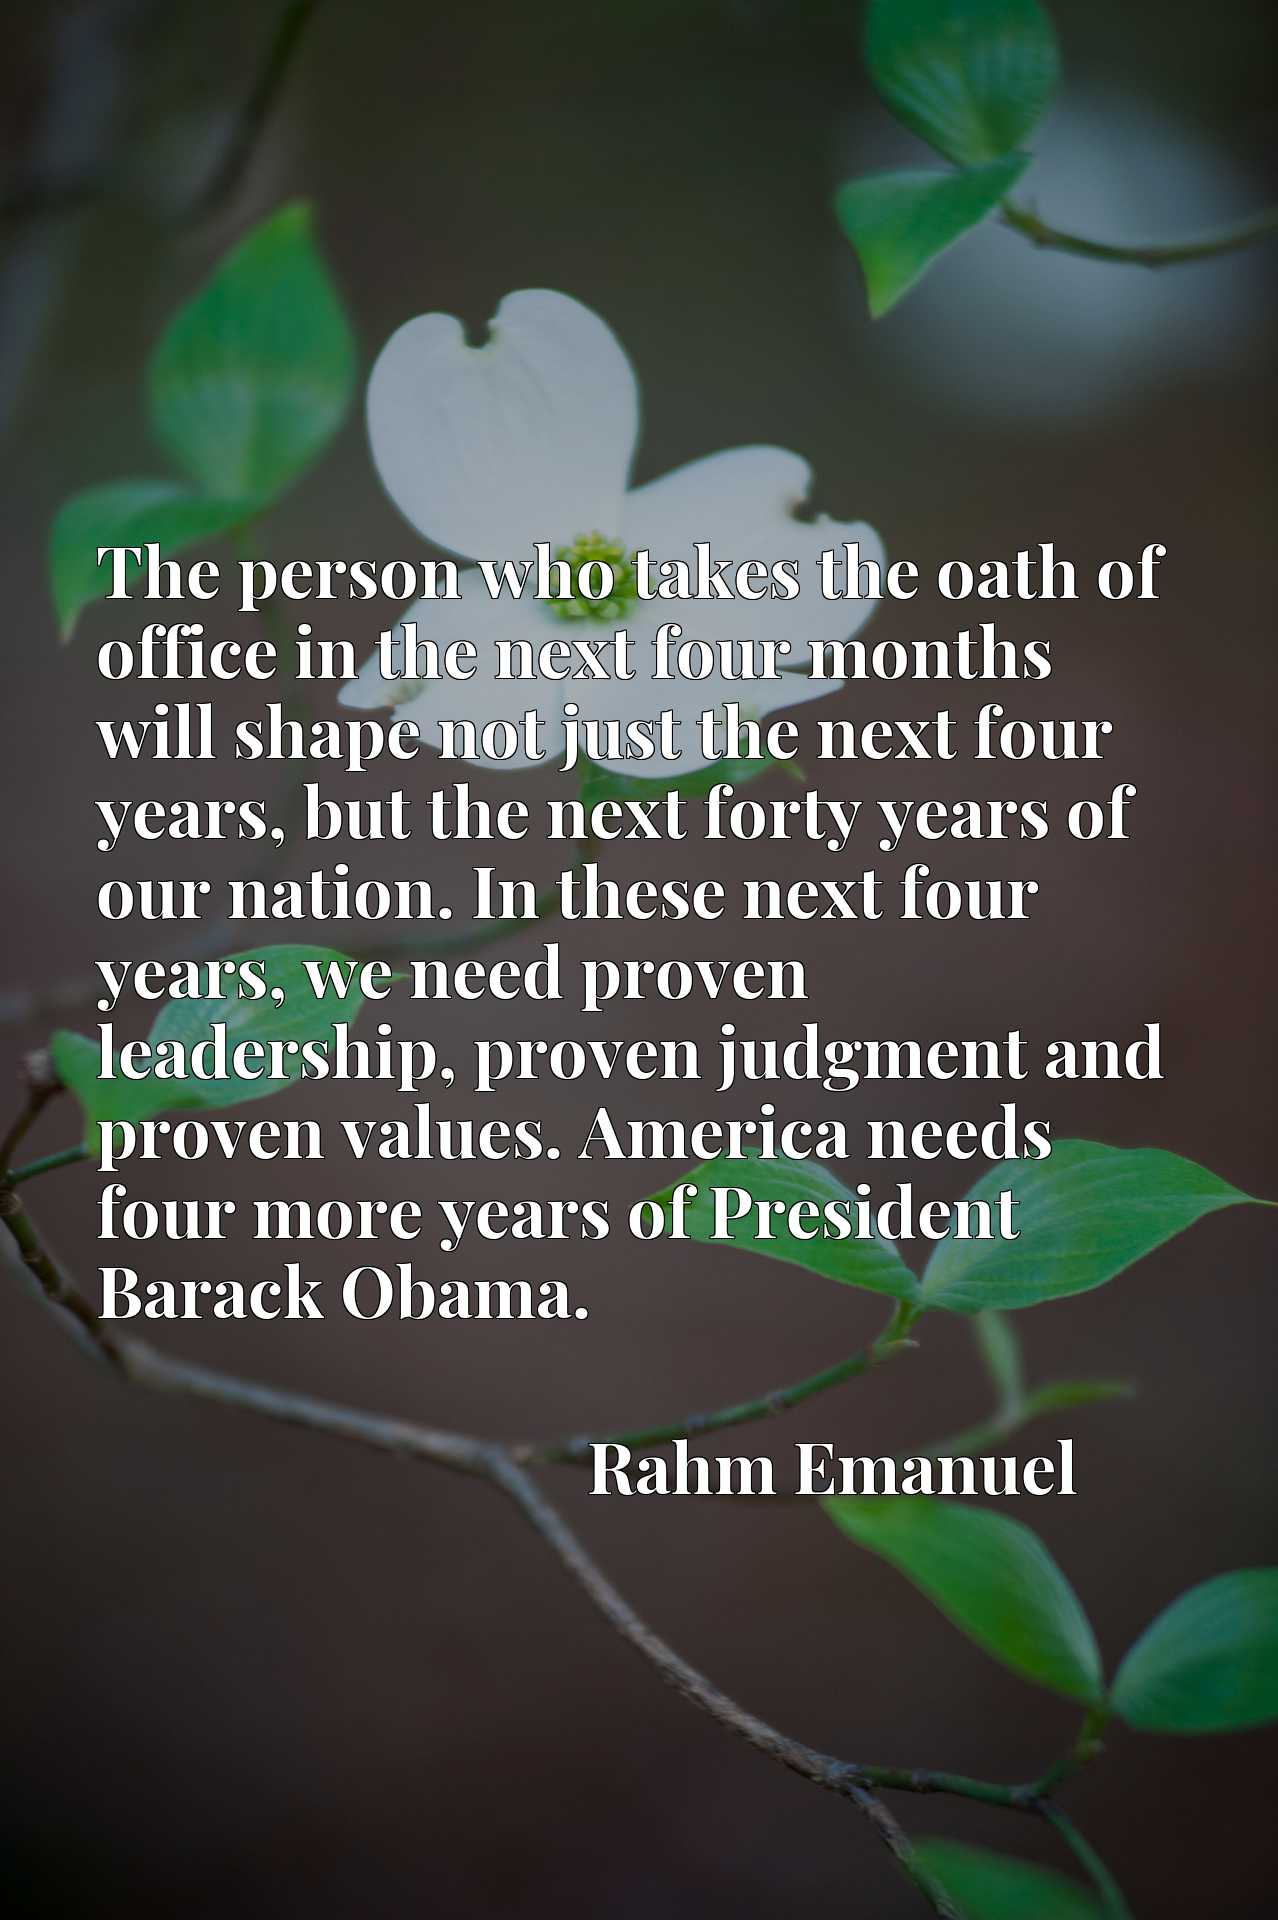 The person who takes the oath of office in the next four months will shape not just the next four years, but the next forty years of our nation. In these next four years, we need proven leadership, proven judgment and proven values. America needs four more years of President Barack Obama.